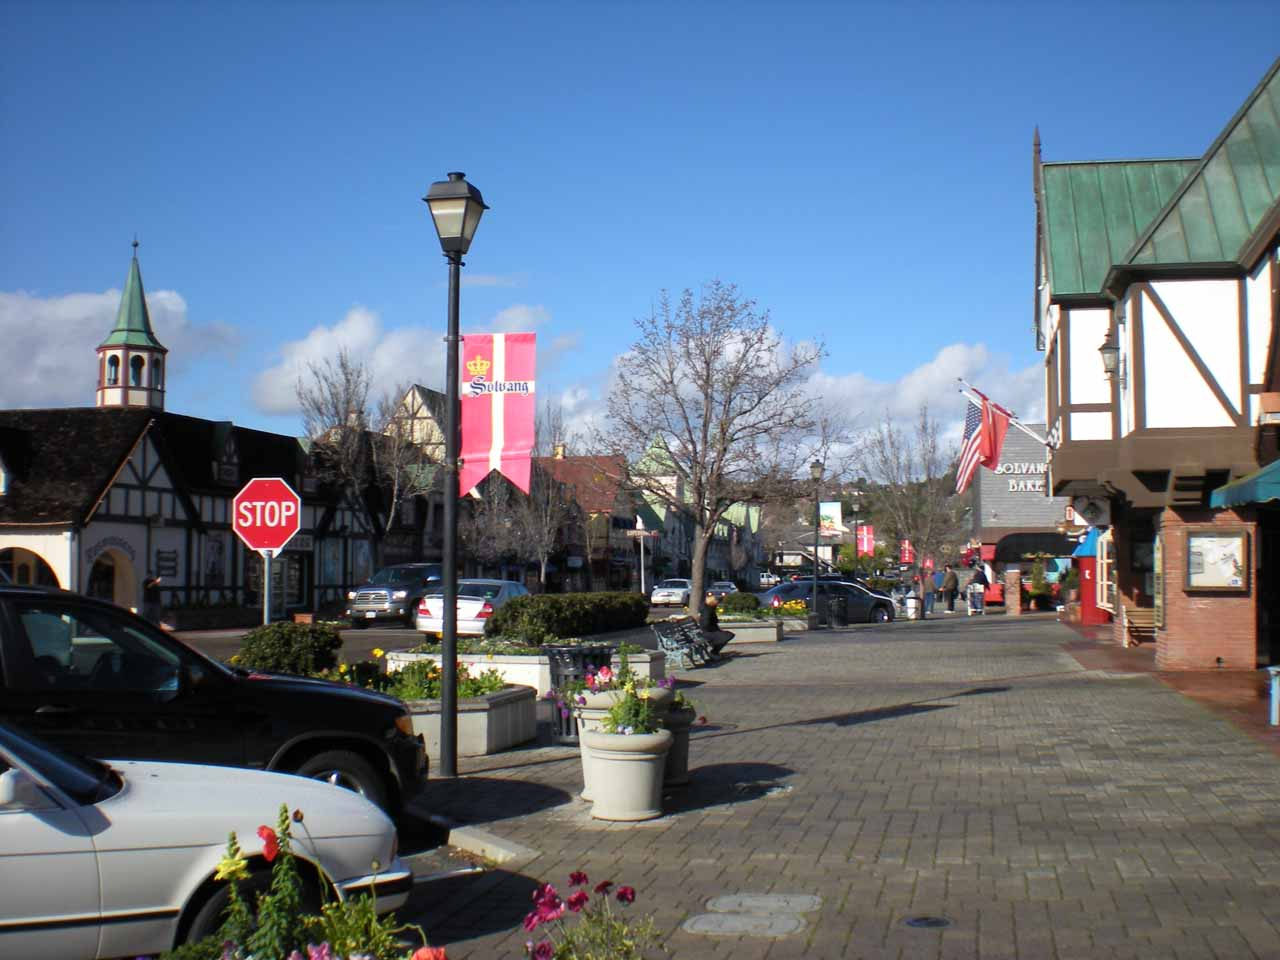 The charming downtown area of Solvang